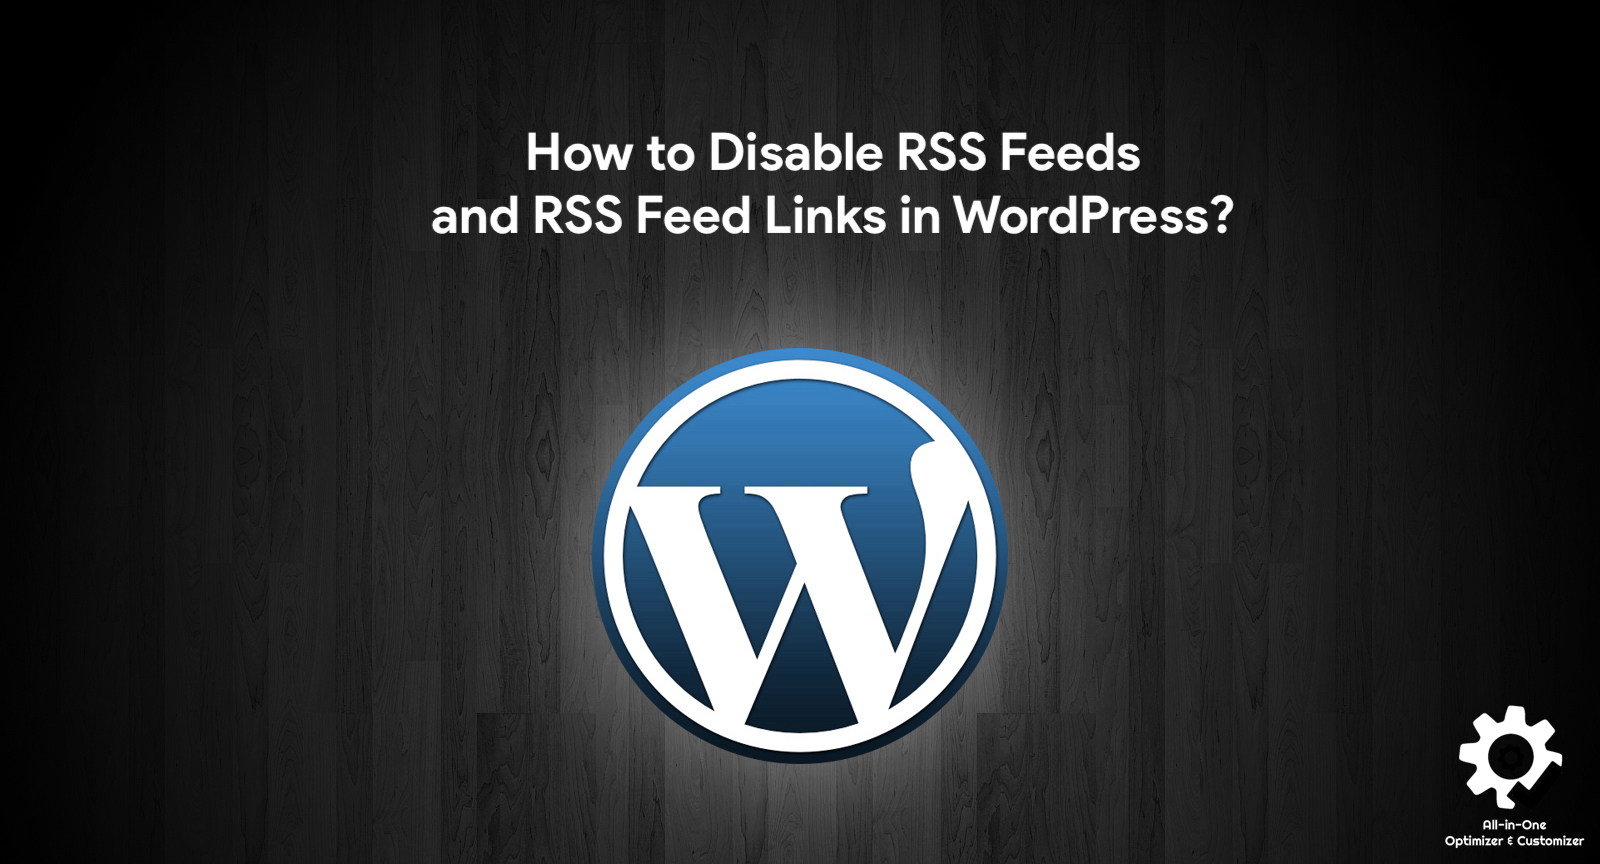 How to Disable RSS Feeds and RSS Feed Links in WordPress?